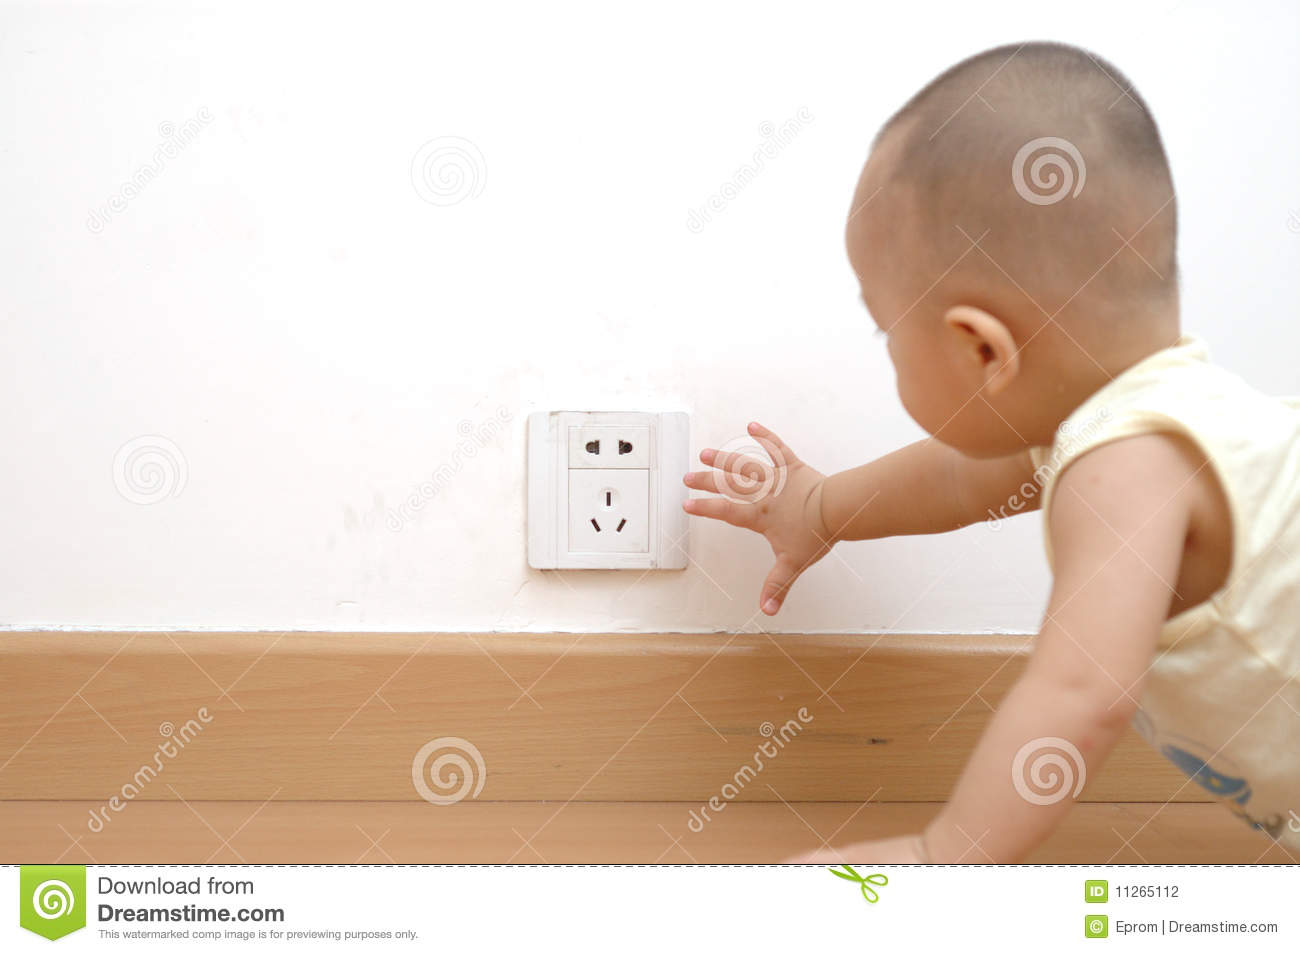 http://www.dreamstime.com/stock-photography-baby-touching-power-socket-image11265112